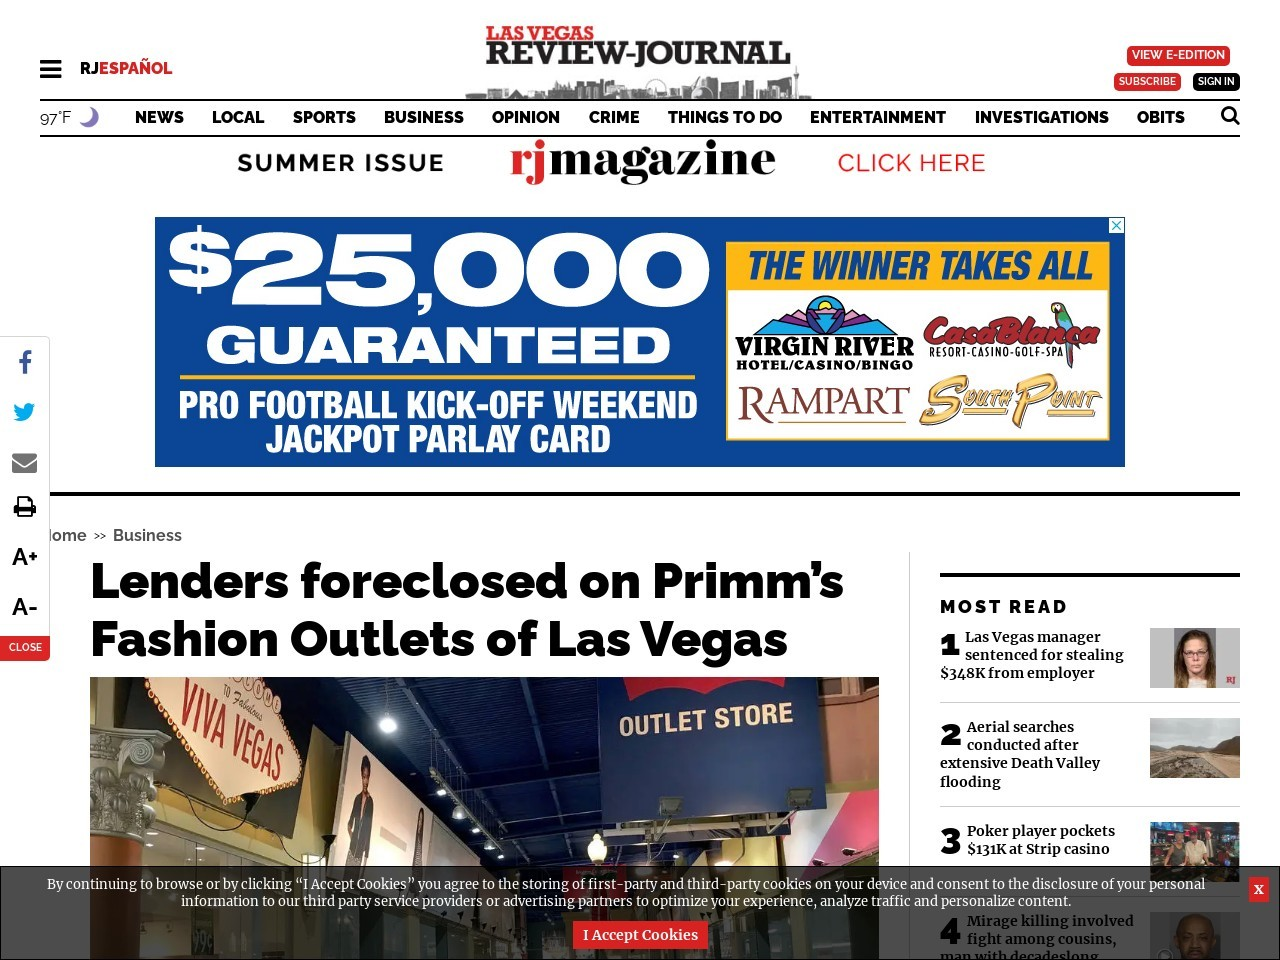 Lenders foreclosed on Primm's Fashion Outlets of Las Vegas